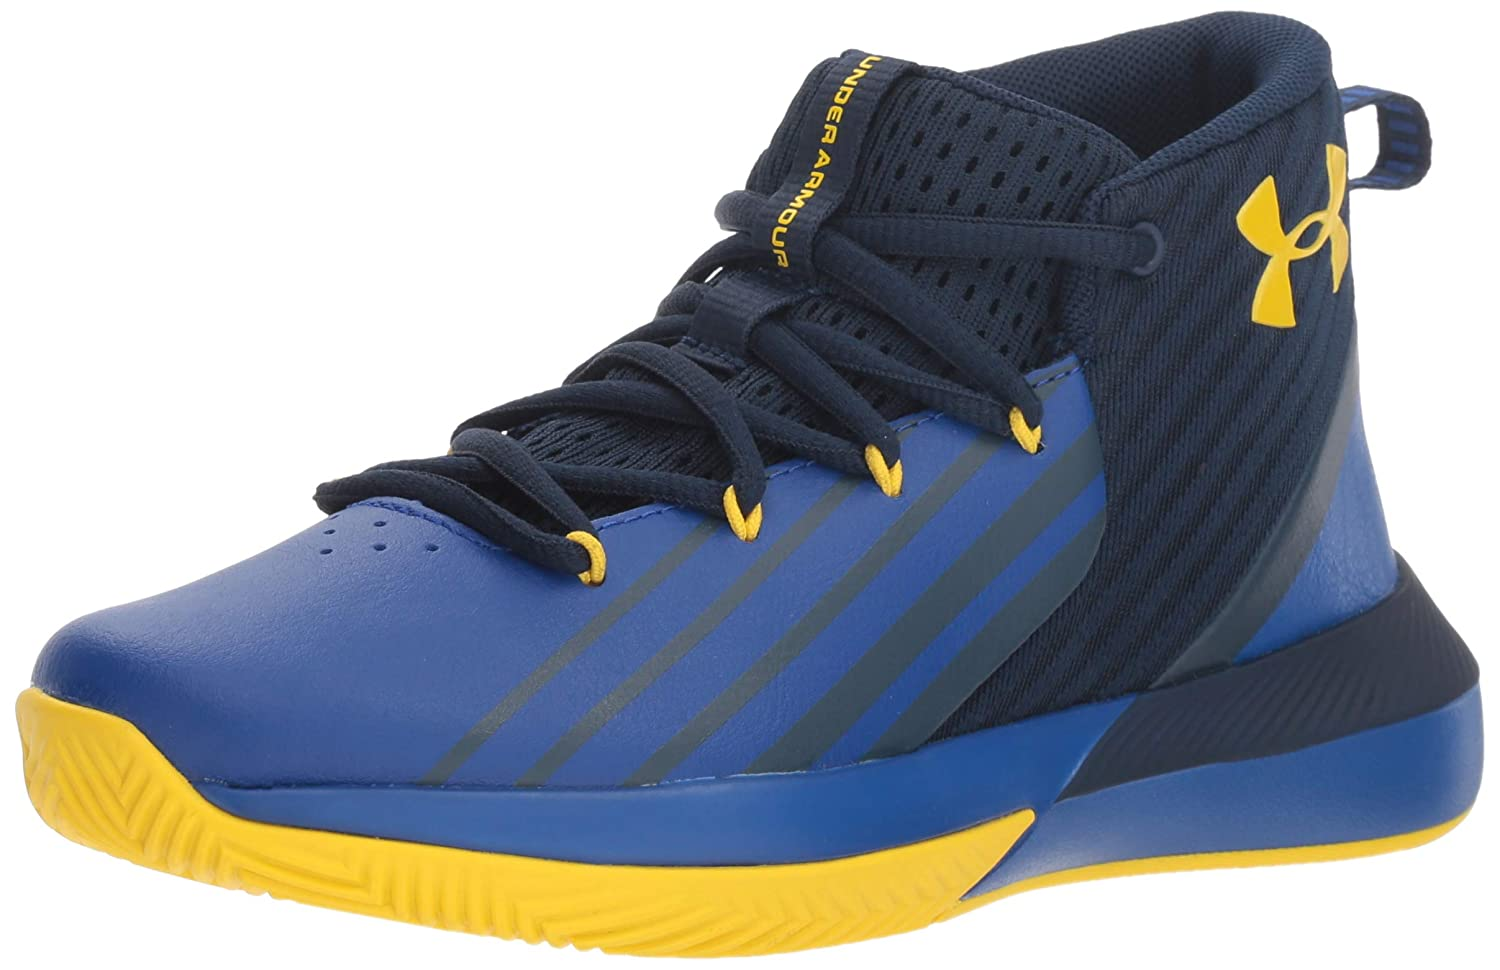 under armour bgs lockdown 3 basketball shoe